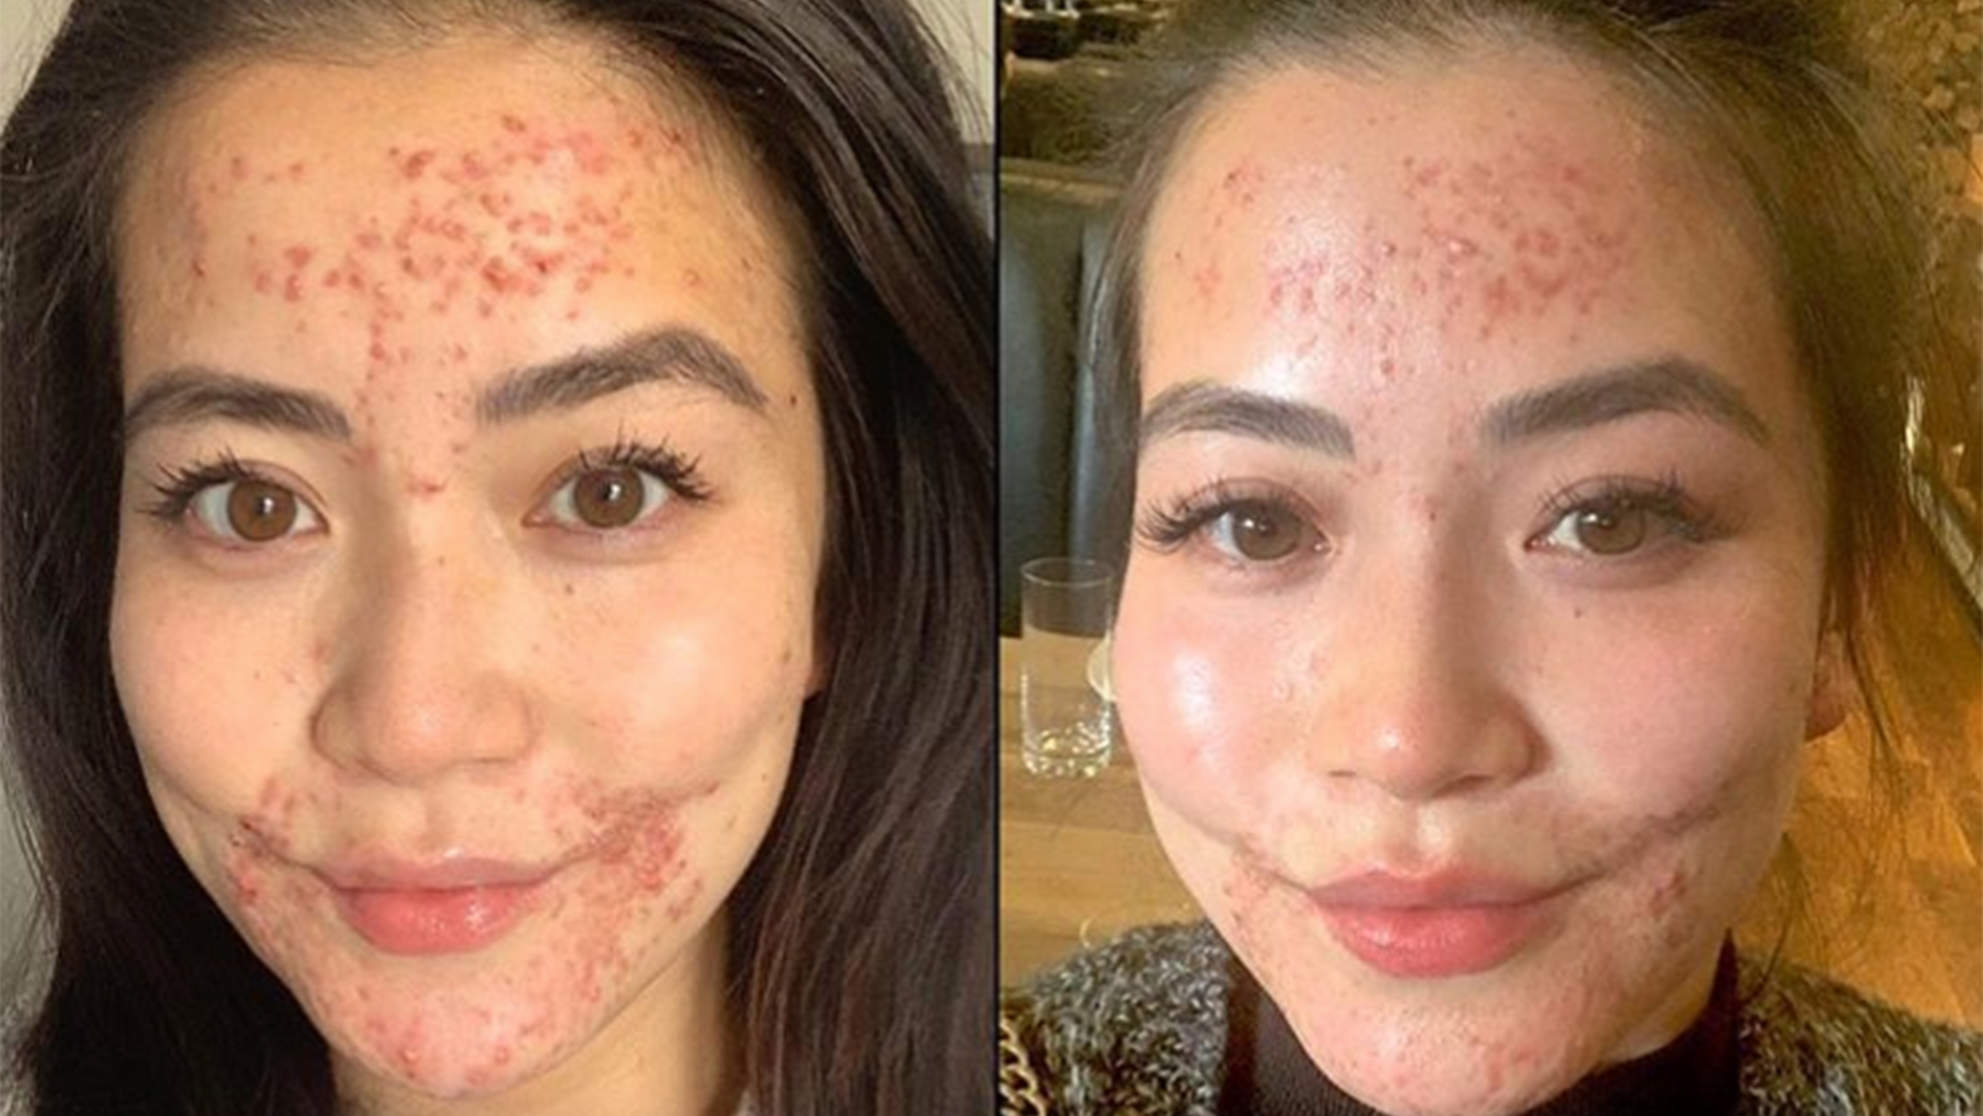 Frances Wang skin condition